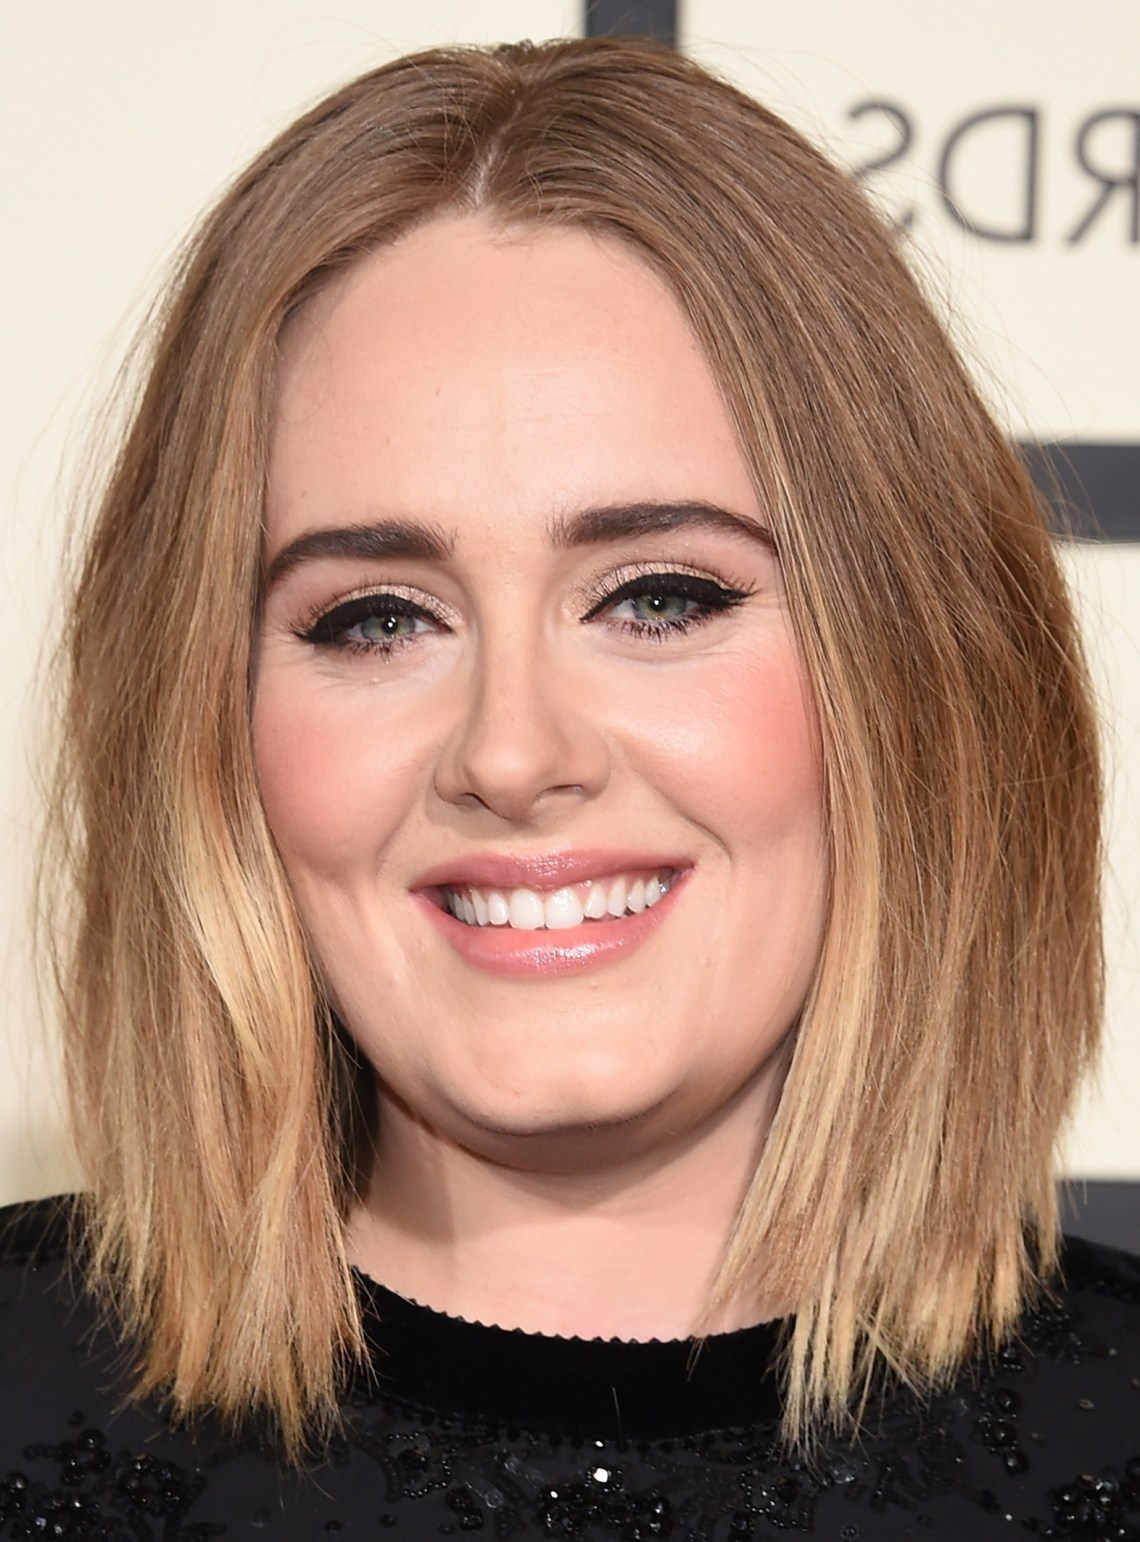 28 Best Hairstyles For Round Faces Round Face Layered Low Maintenance Medium Length Hairstyles